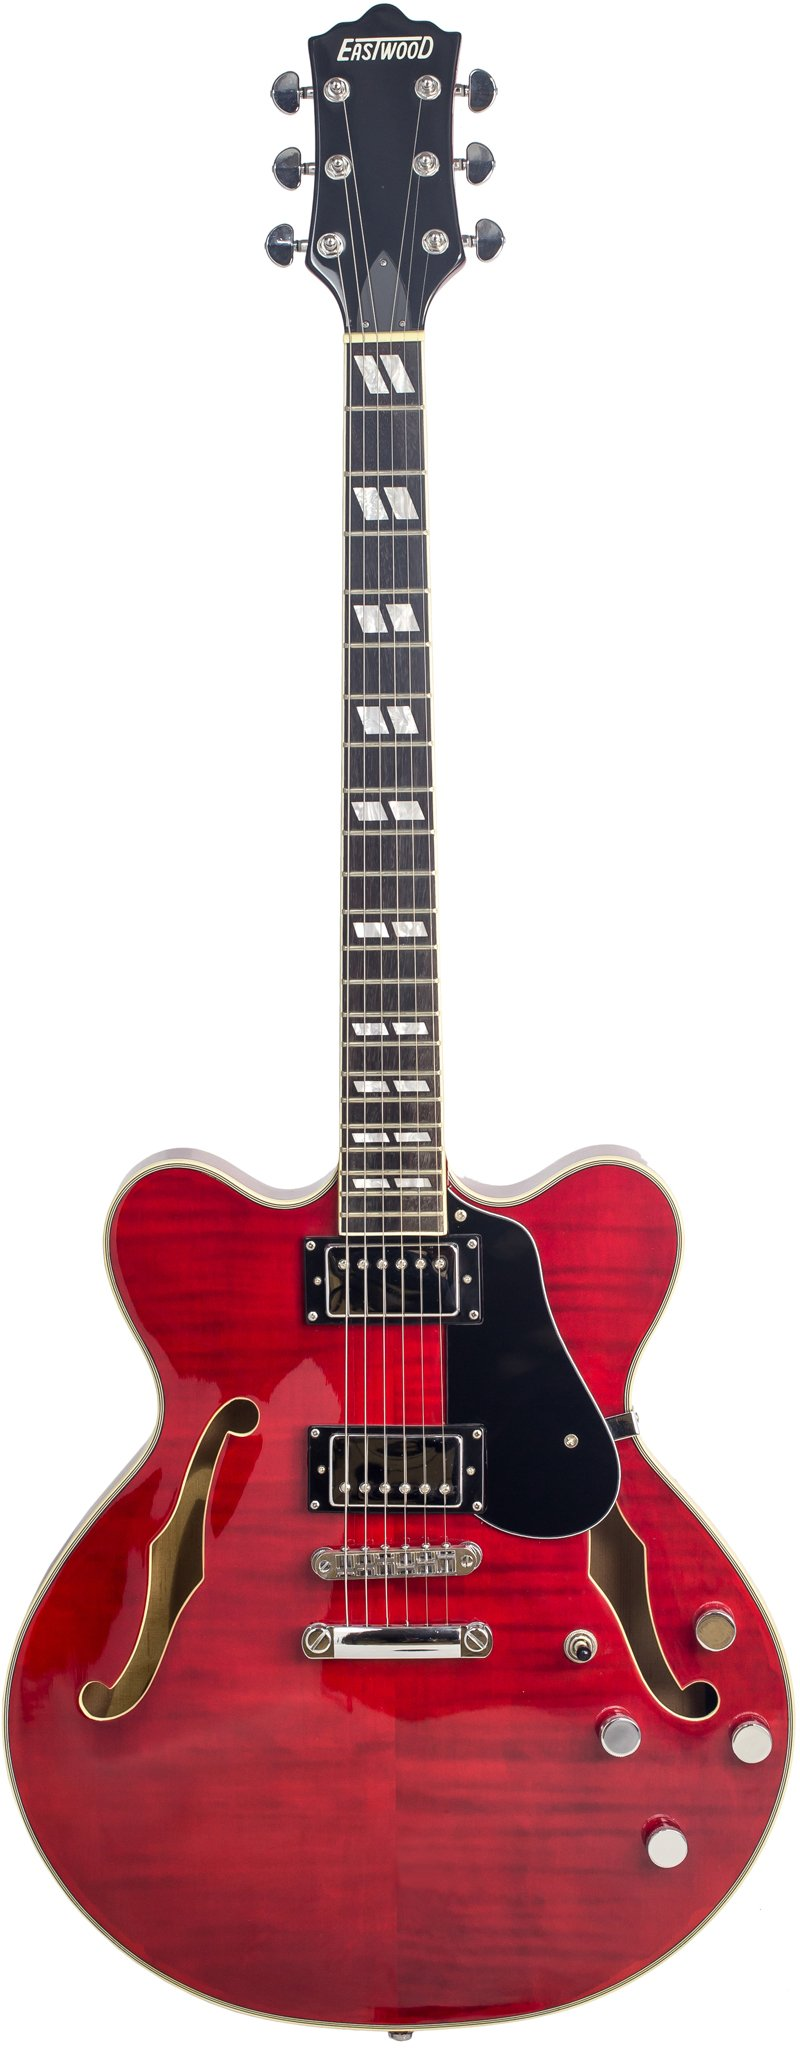 Eastwood Guitars Classic 6 HB Dark Cherry Full Front